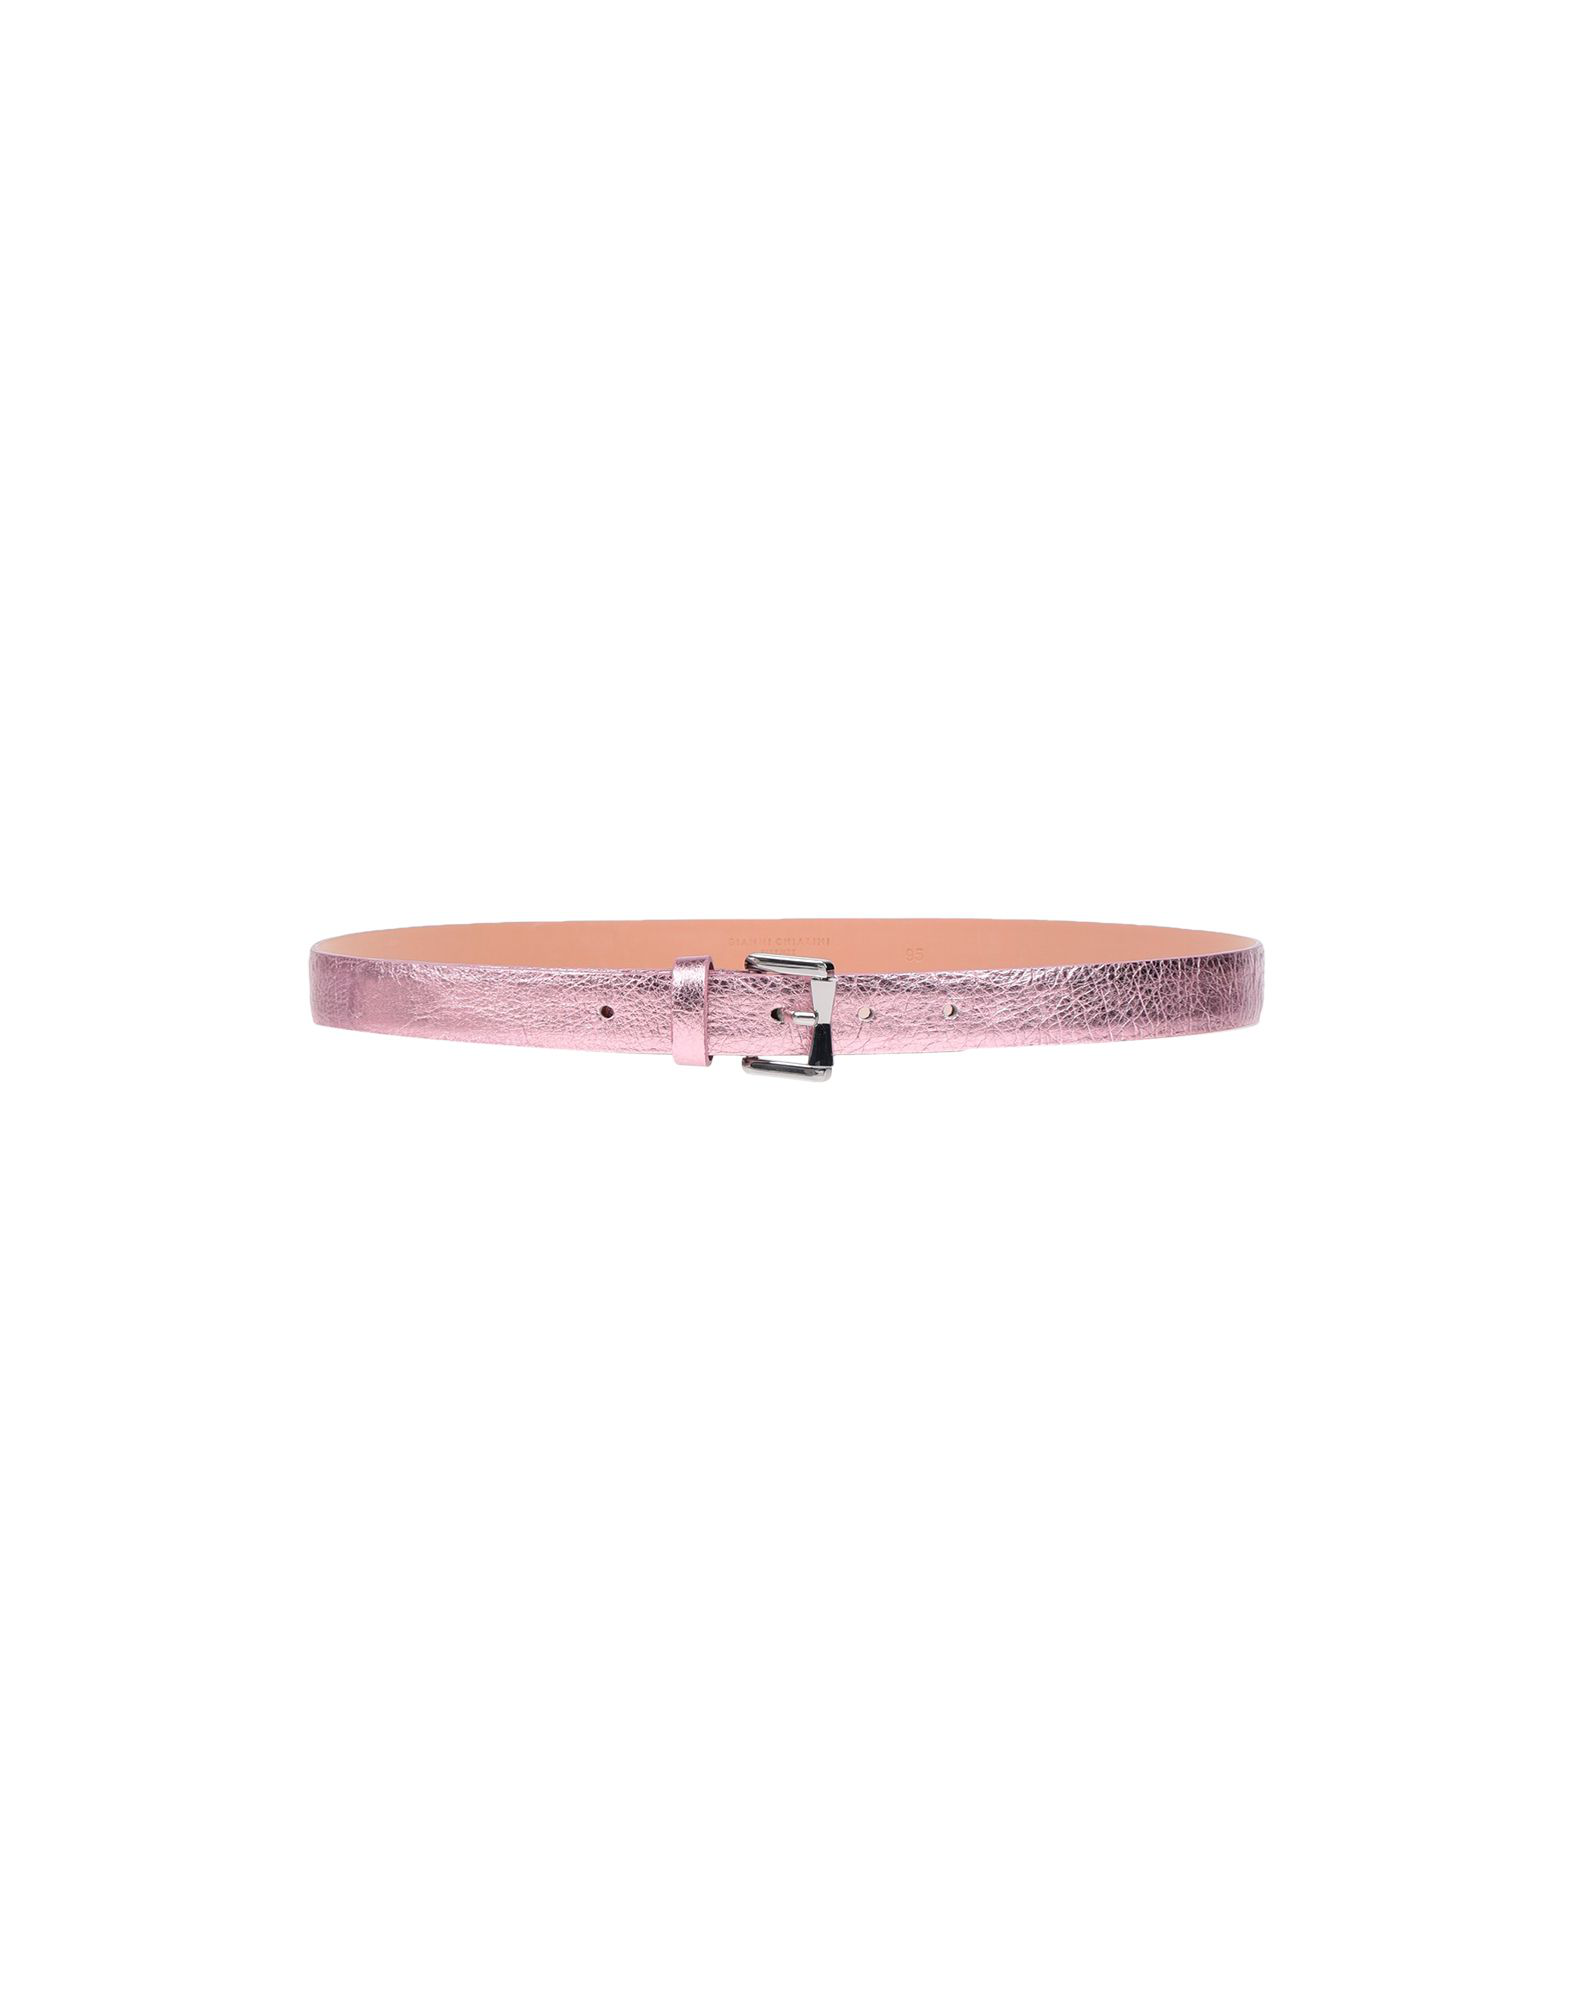 Gianni Chiarini Thin Belt In Pink